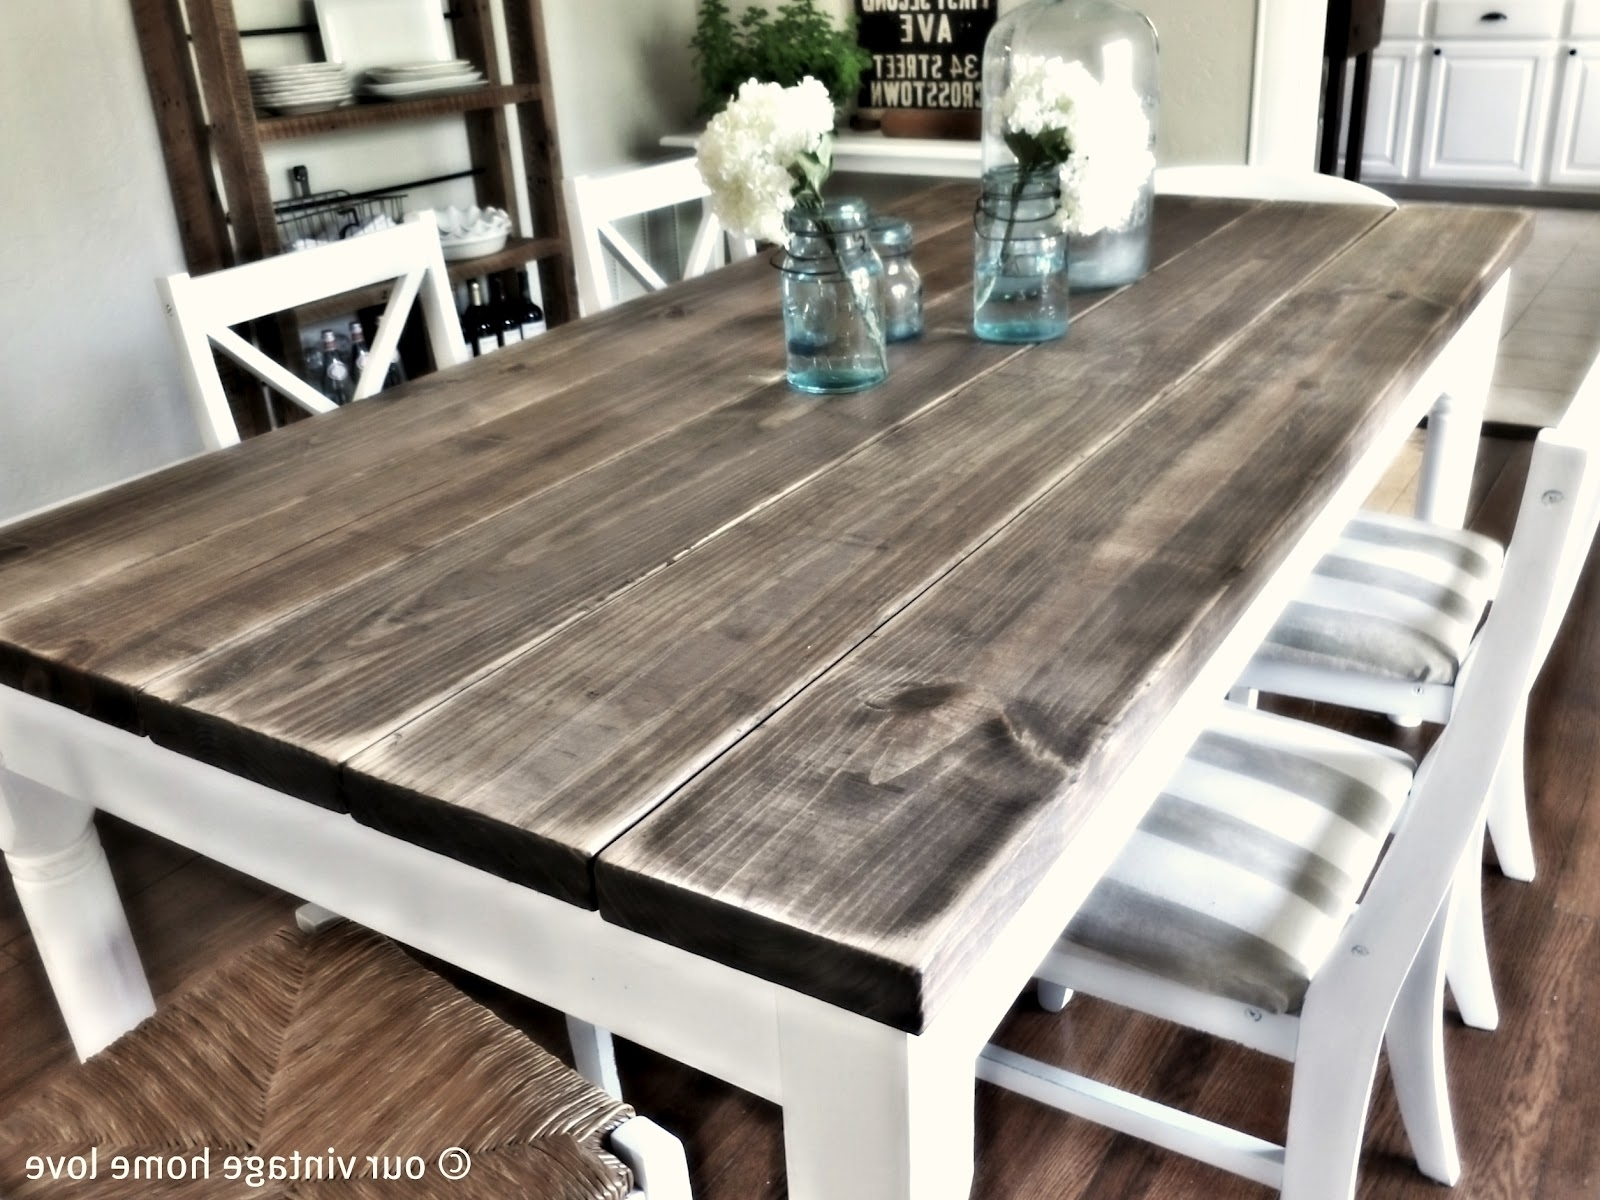 Vintage Home Love: Dining Room Table Tutorial Throughout Trendy Farm Dining Tables (View 5 of 25)